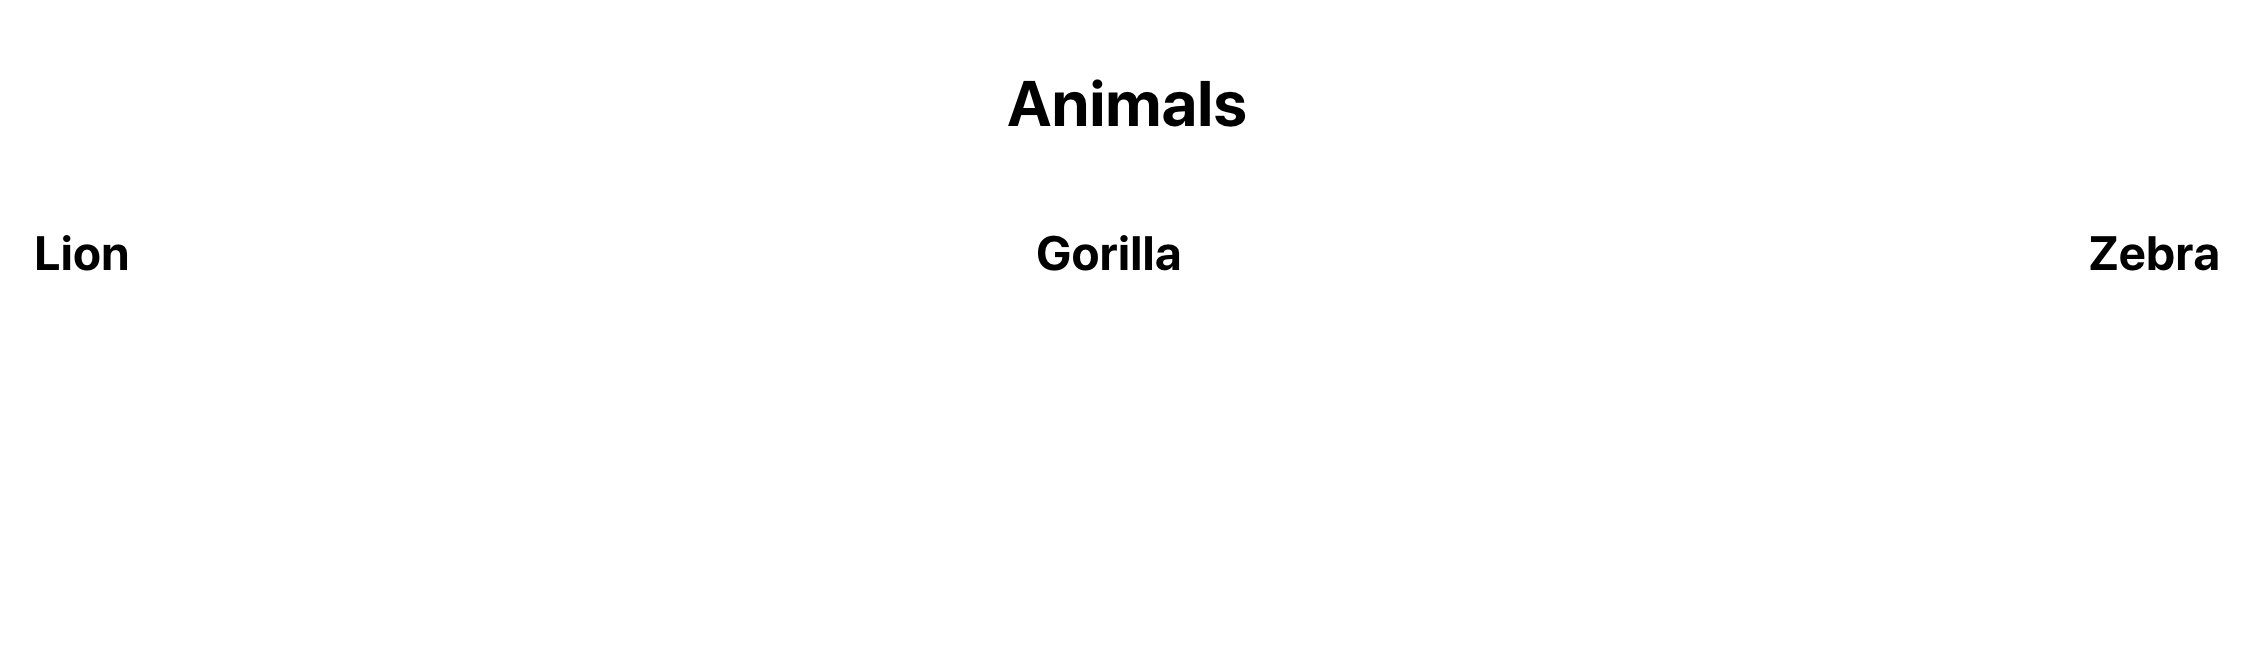 React projects with animal names rendered